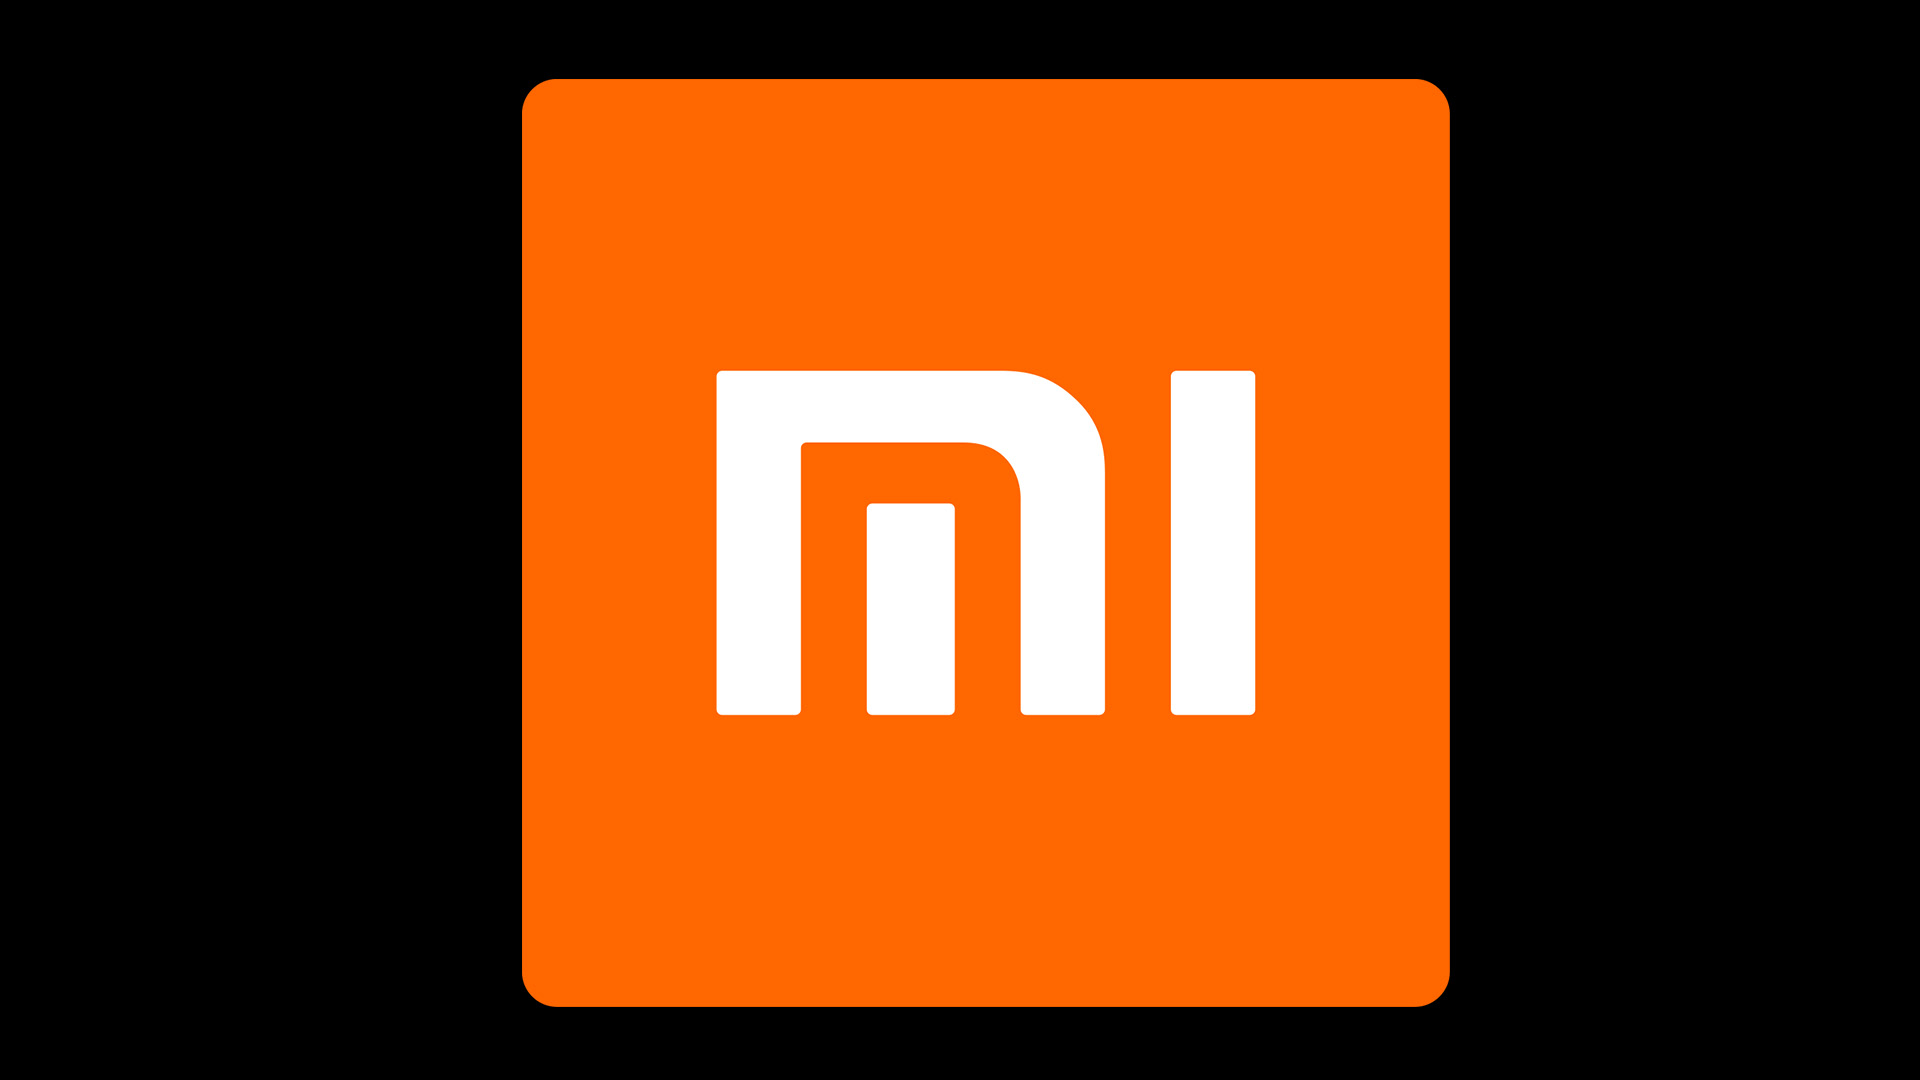 Meaning Xiaomi logo and symbol.